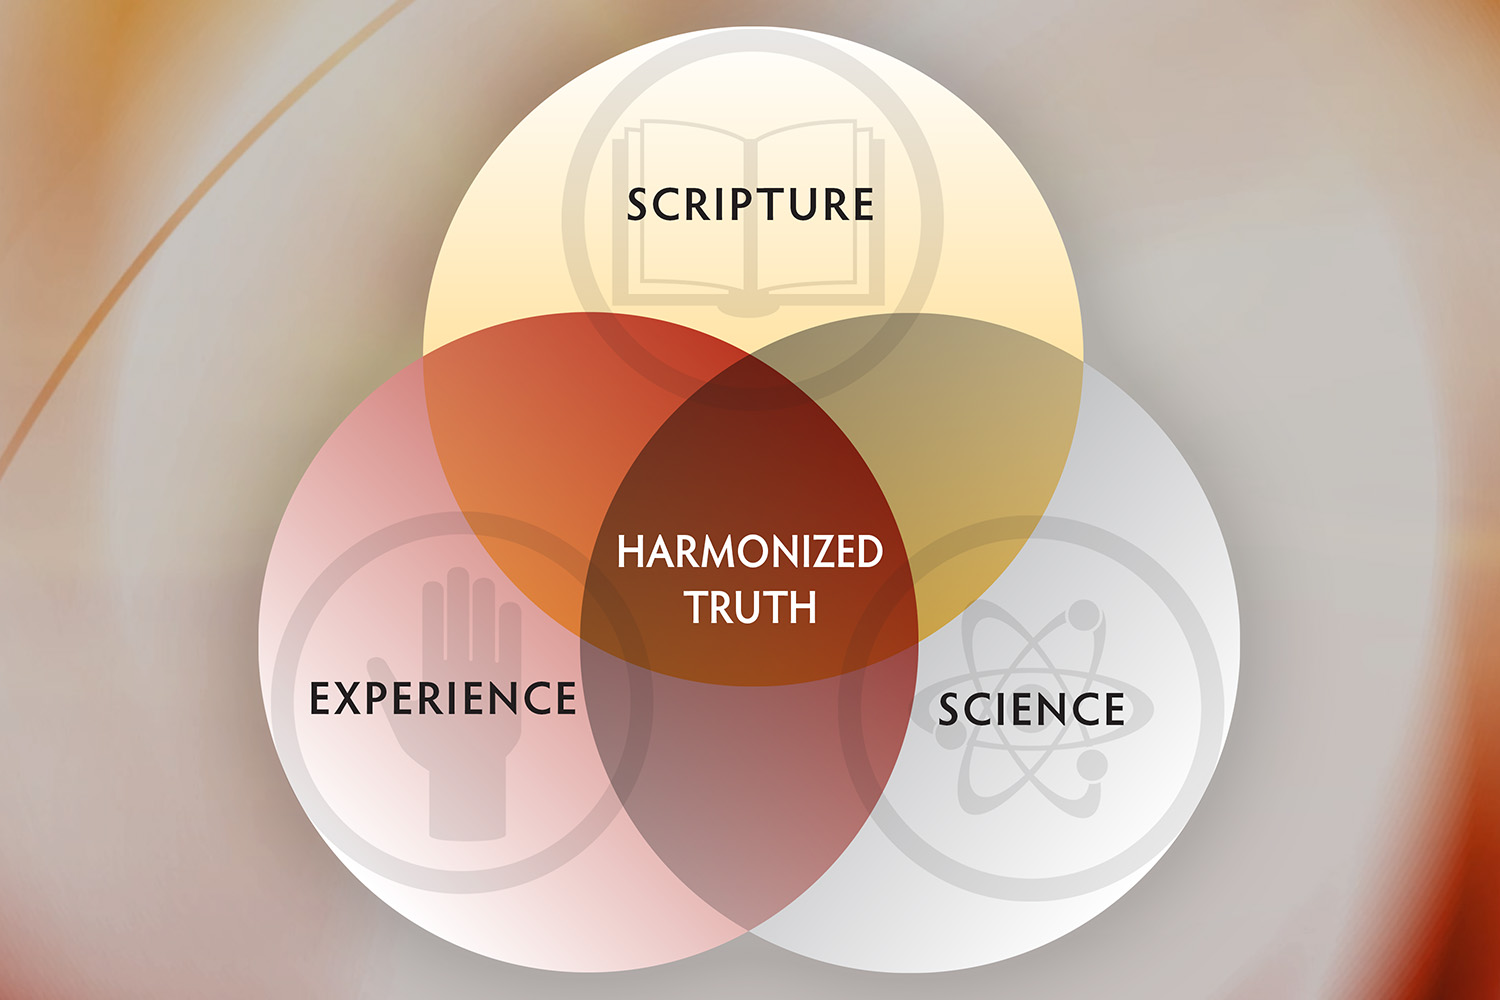 The Integrative Evidence-Based Approach to Finding Truth